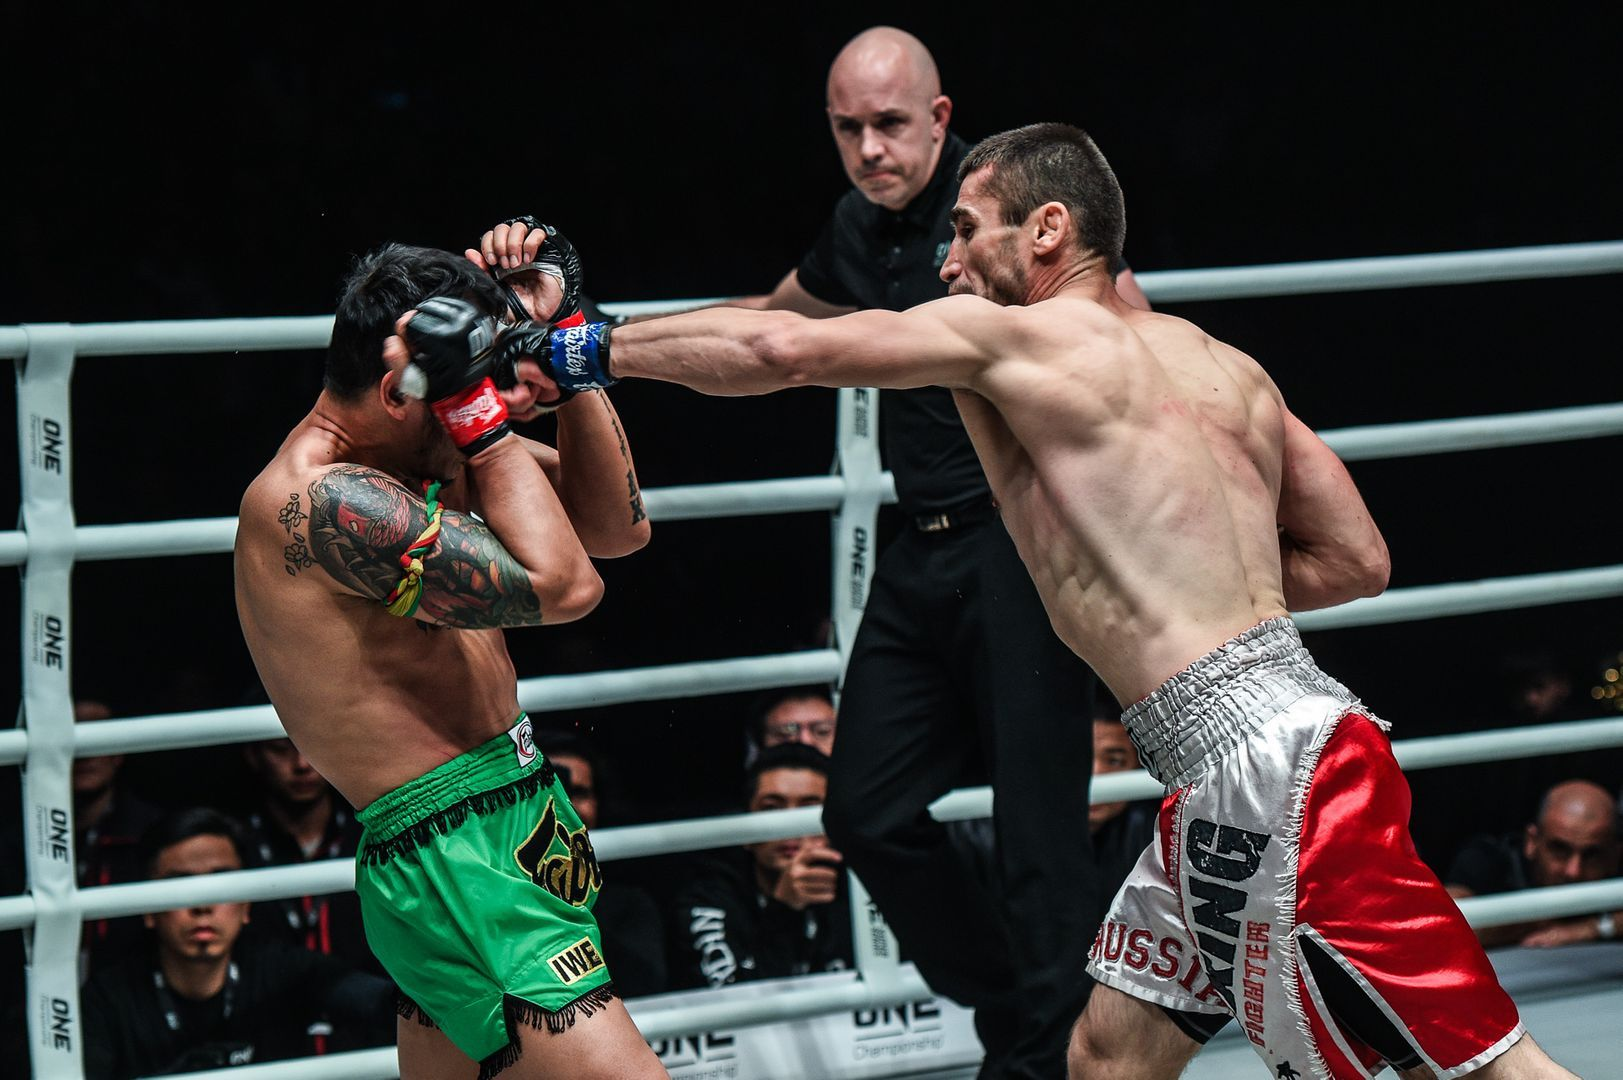 Jamal Yusupov defeats Yodsanklai at ONE AGE OF DRAGONS